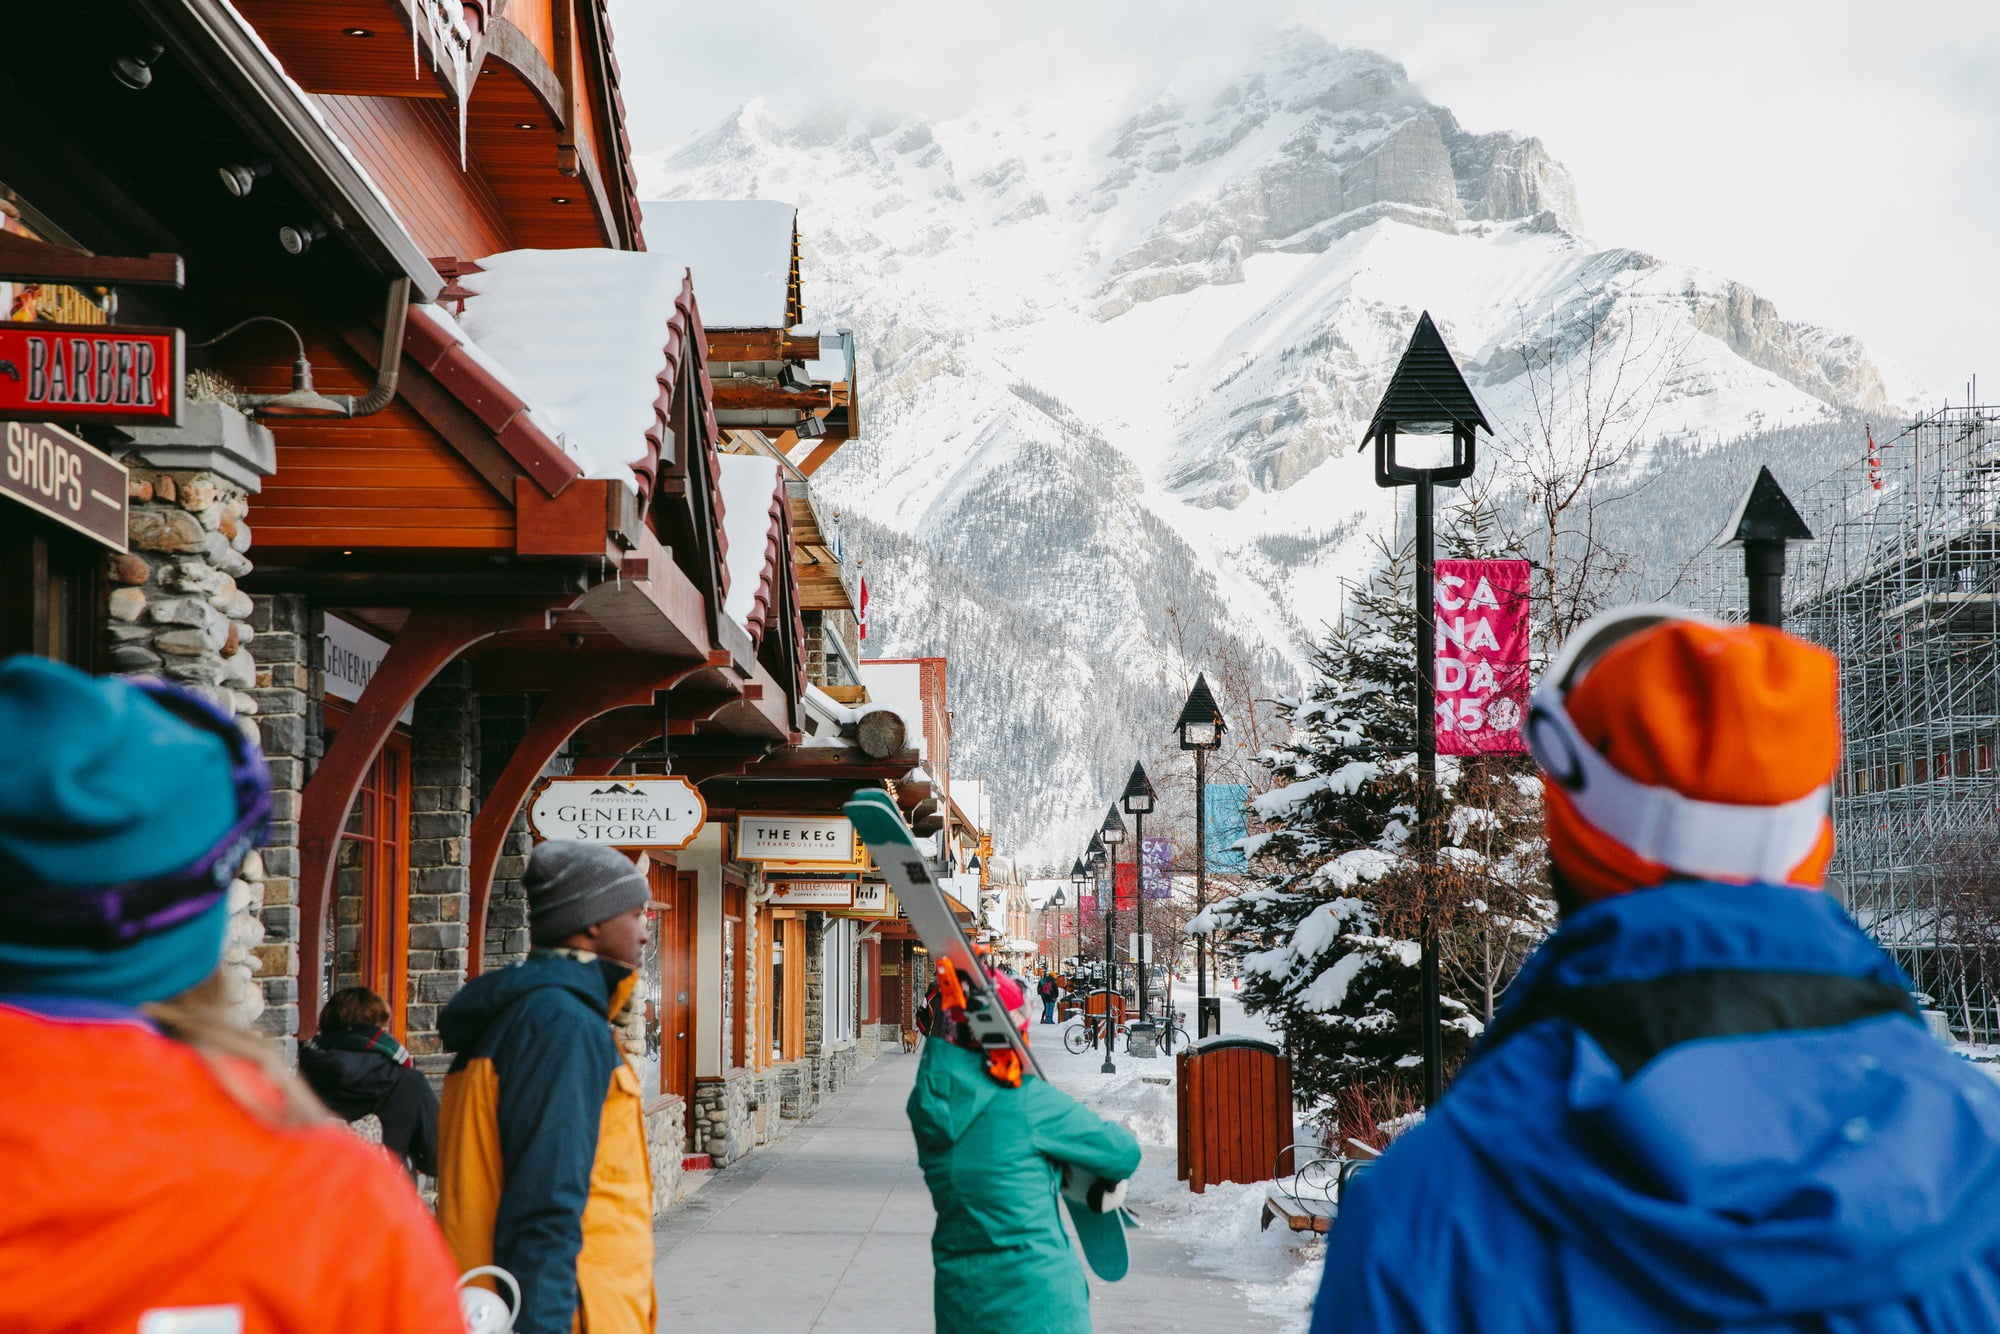 People walking through town of Banff with skis